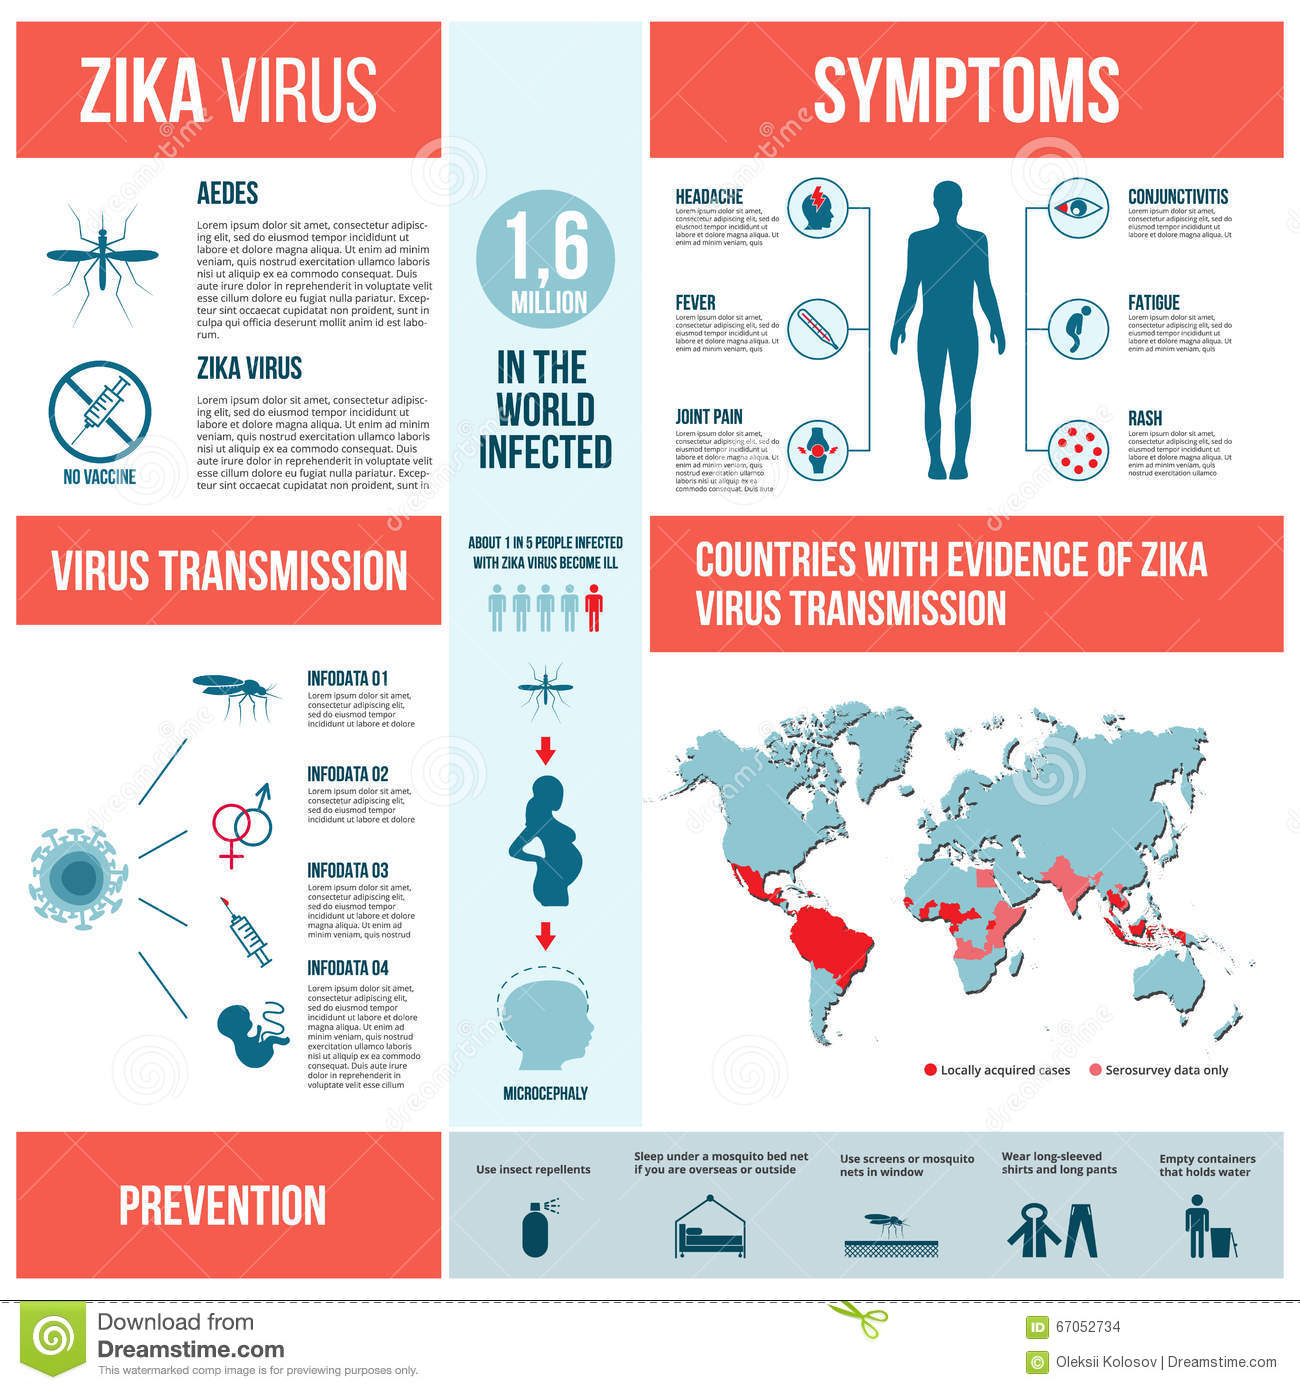 zika virus infographic